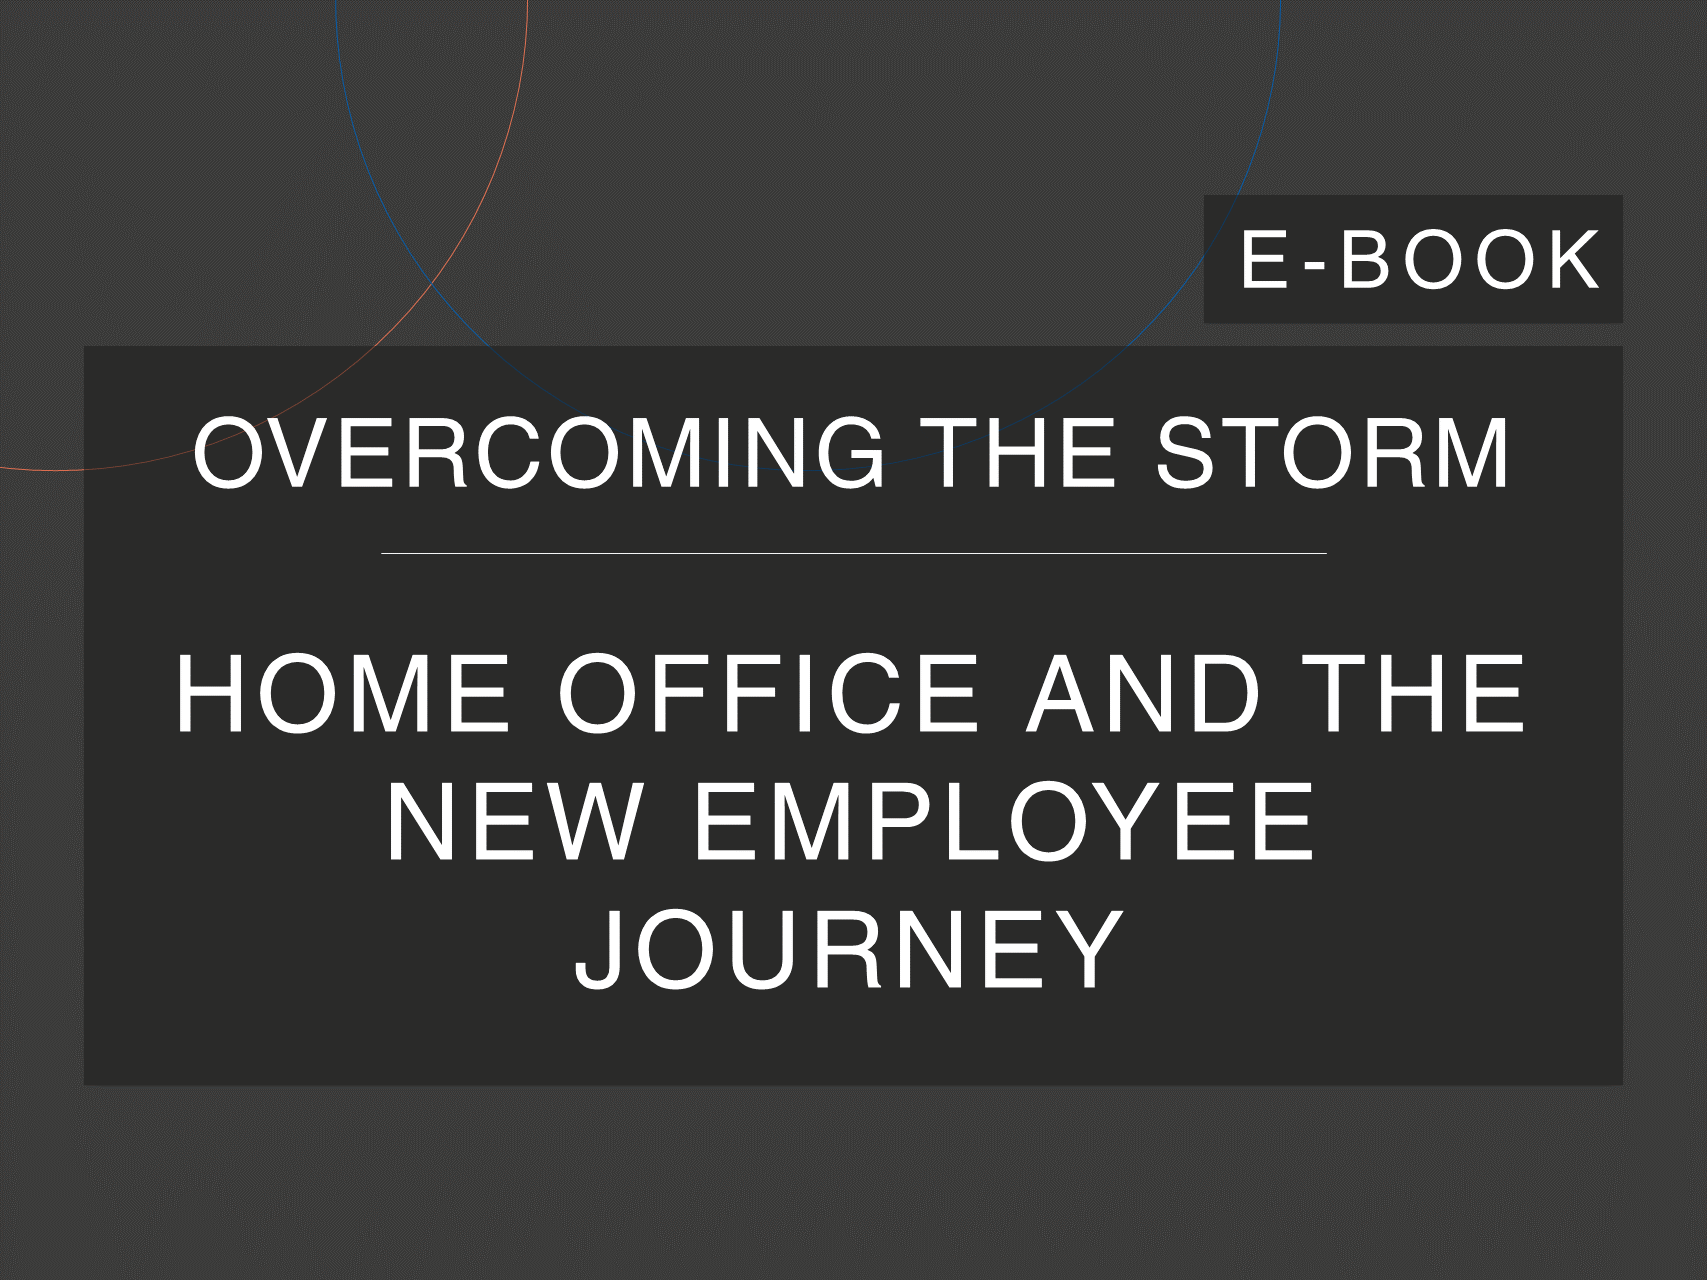 Cosin Consulting's 'Overcoming the Storm' e-Book cover on 'Home Office and the New Employee's Journey